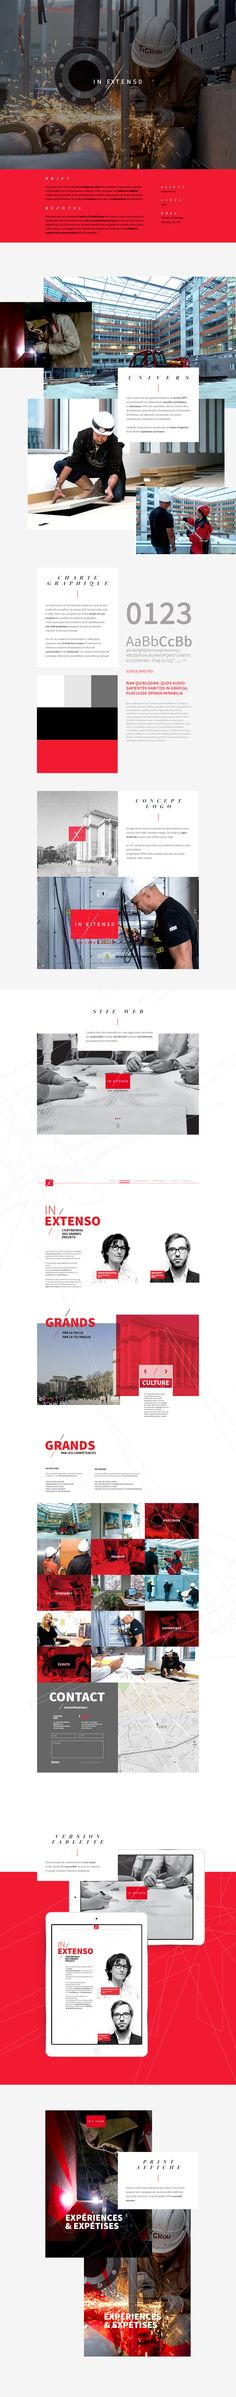 In Extenso - Léon Grosse on Behance